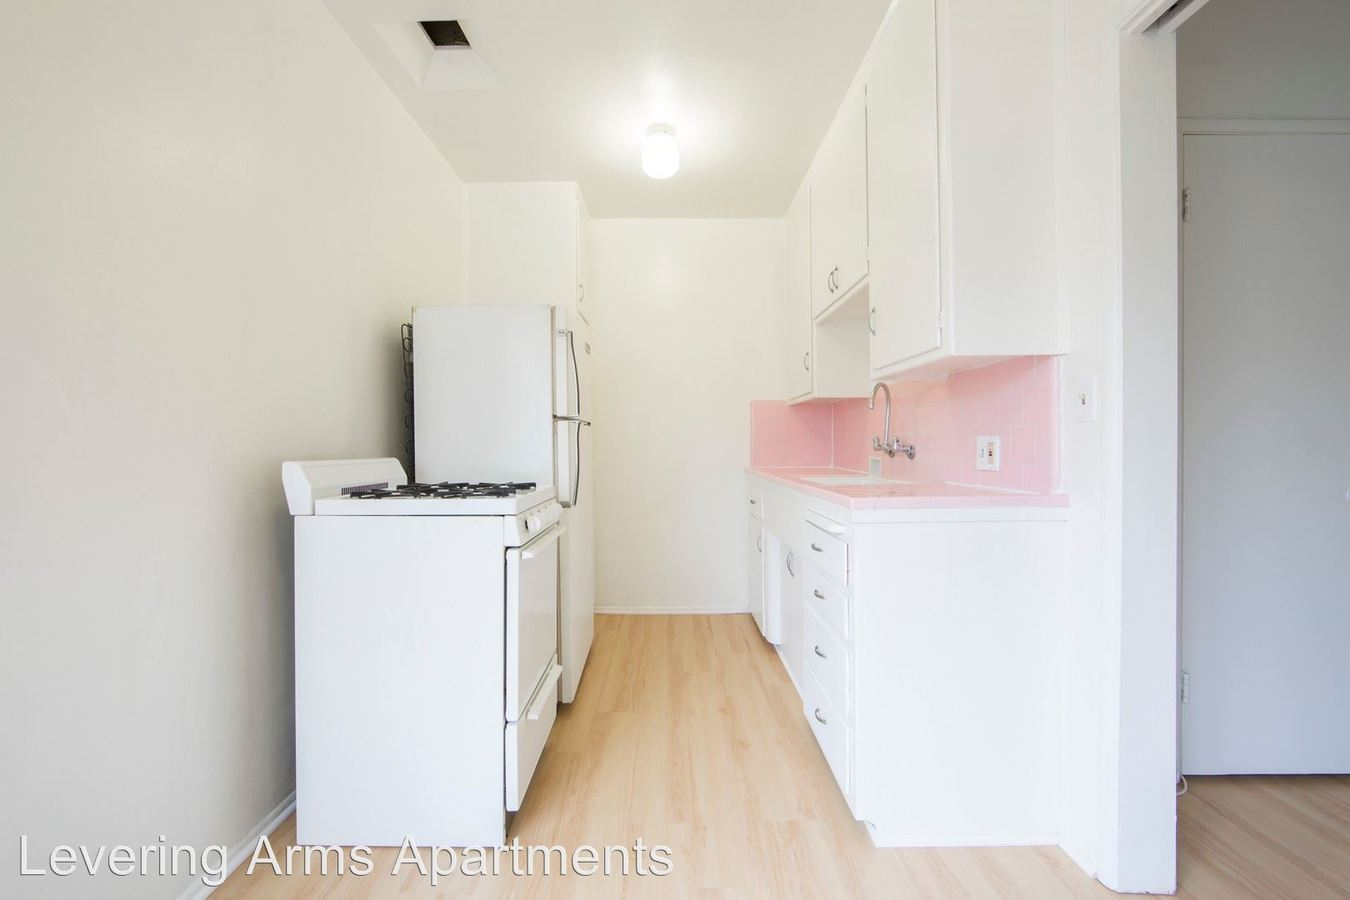 Studio 1 Bathroom Apartment for rent at 667-669 Levering Ave. in Los Angeles, CA